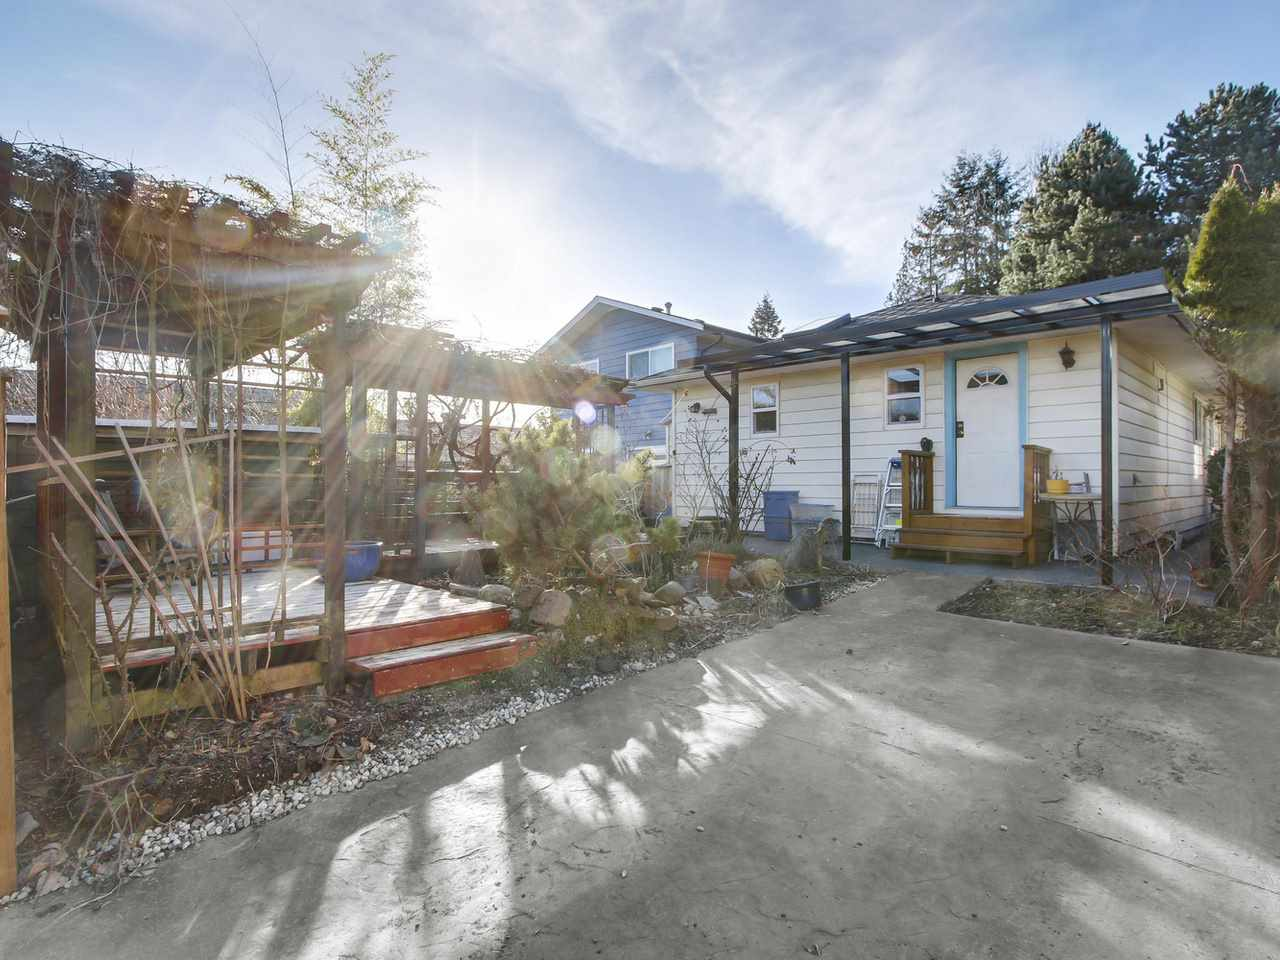 Photo 19: Photos: 1520 MACGOWAN Avenue in North Vancouver: Norgate House for sale : MLS® # R2137032